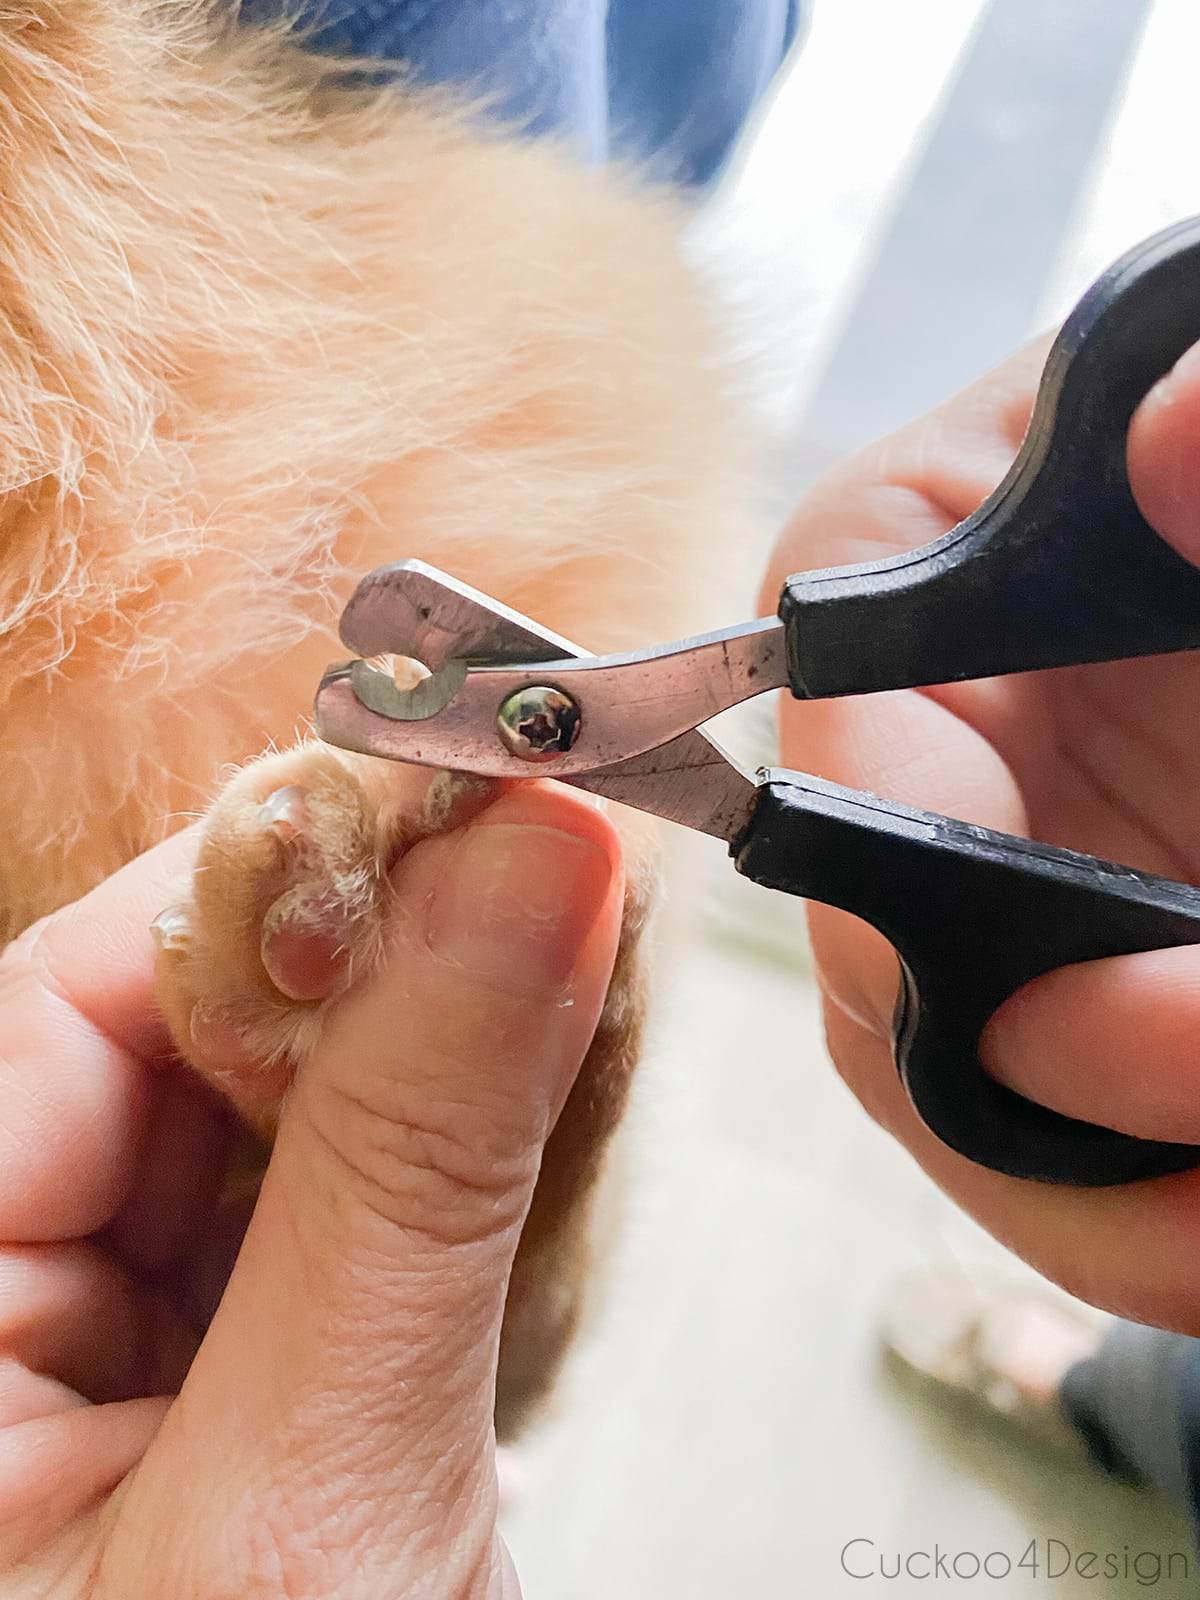 trimming cat claws with pet nail clippers